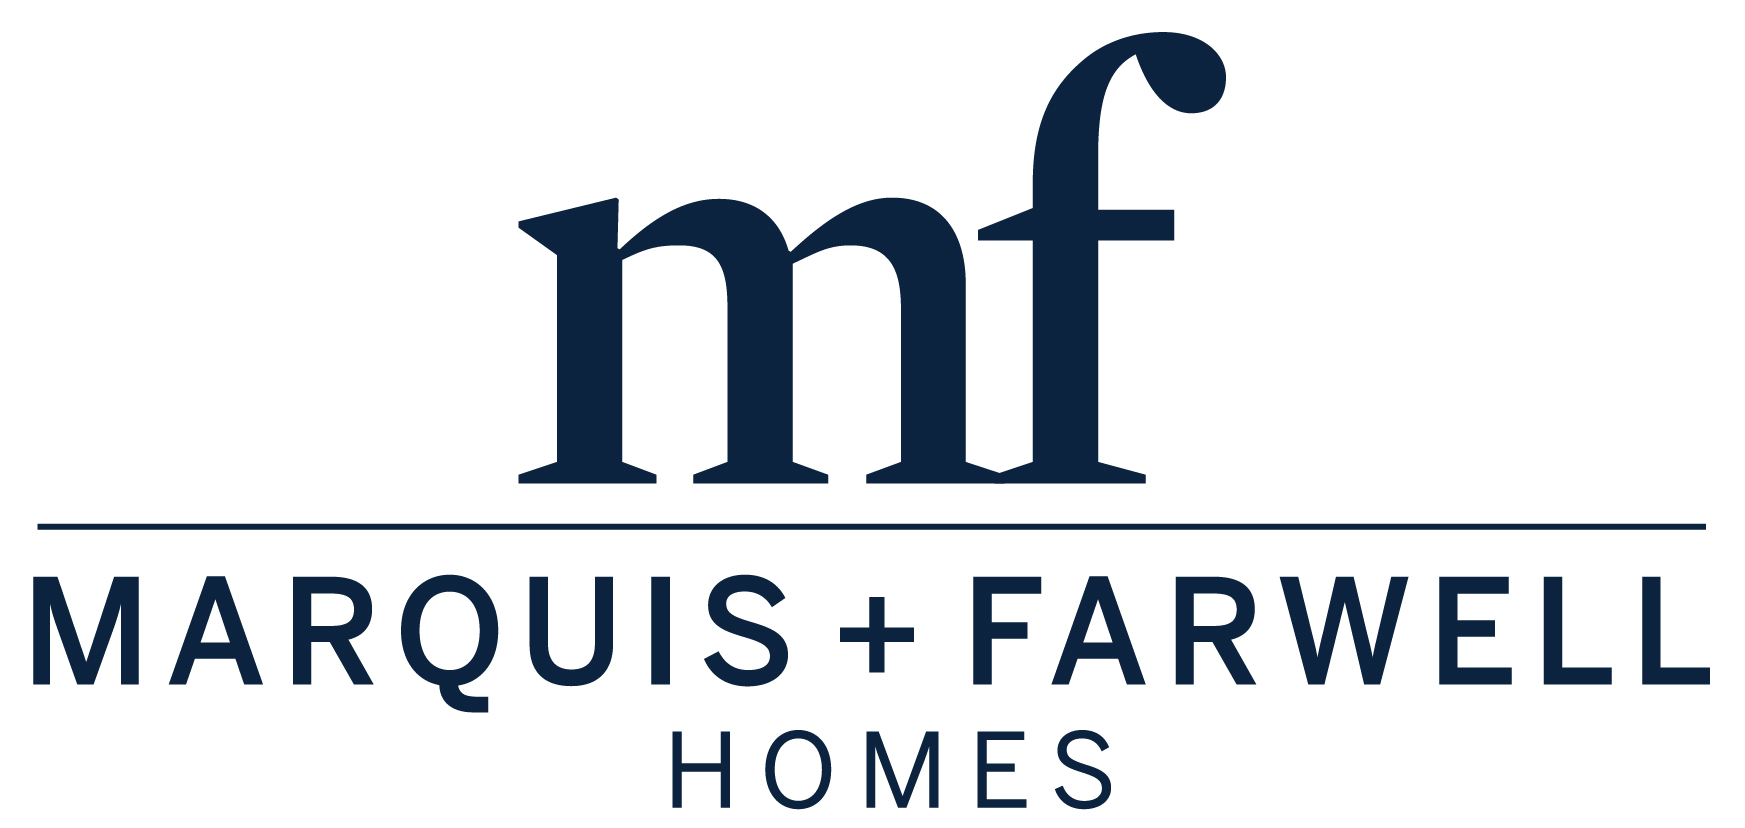 Marquis Farwell Homes